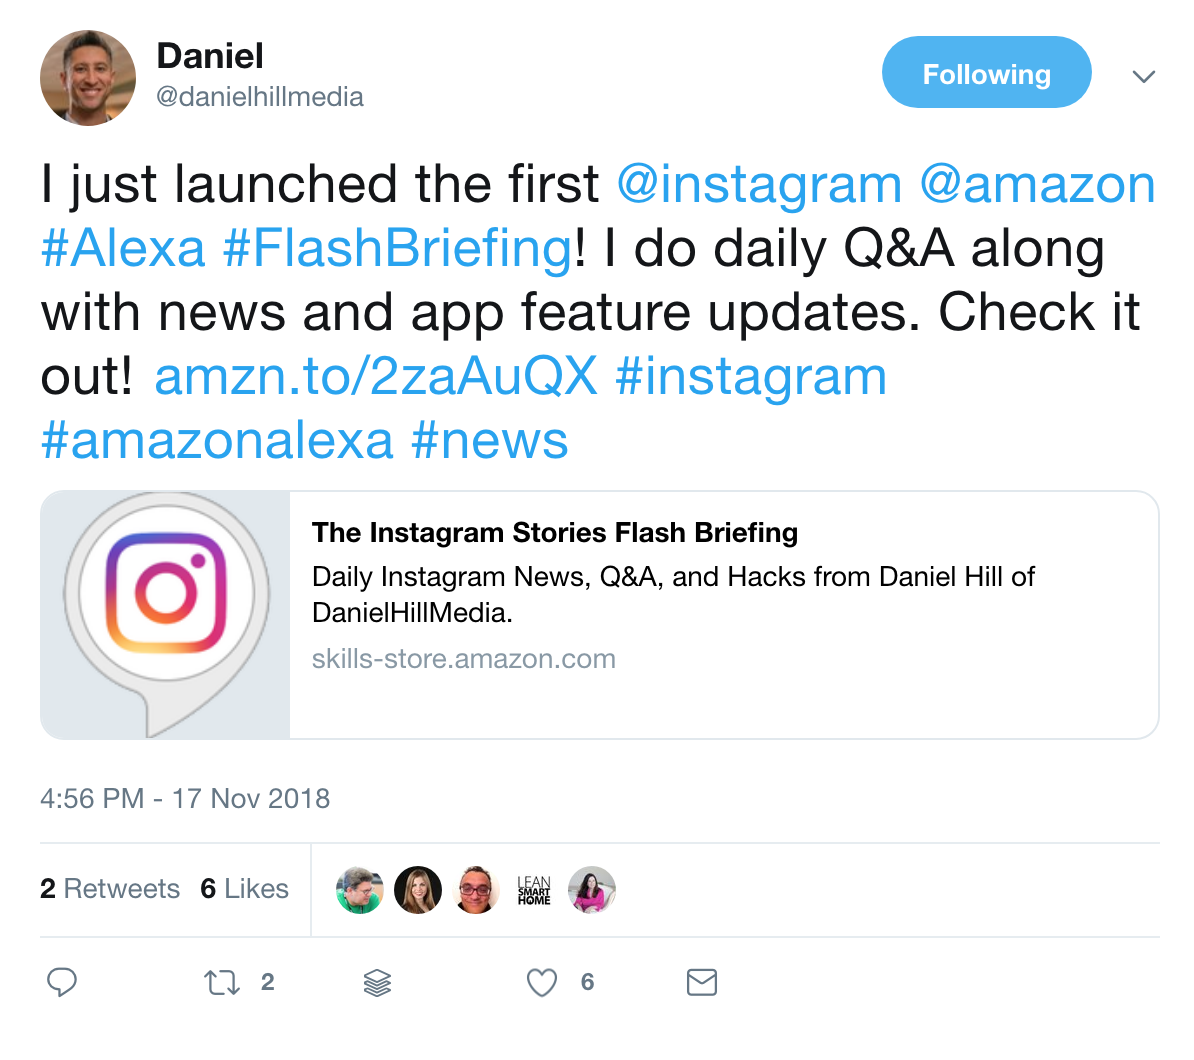 danielhillmedia-tweet-instagram-stories-flash-briefing-alexa.png